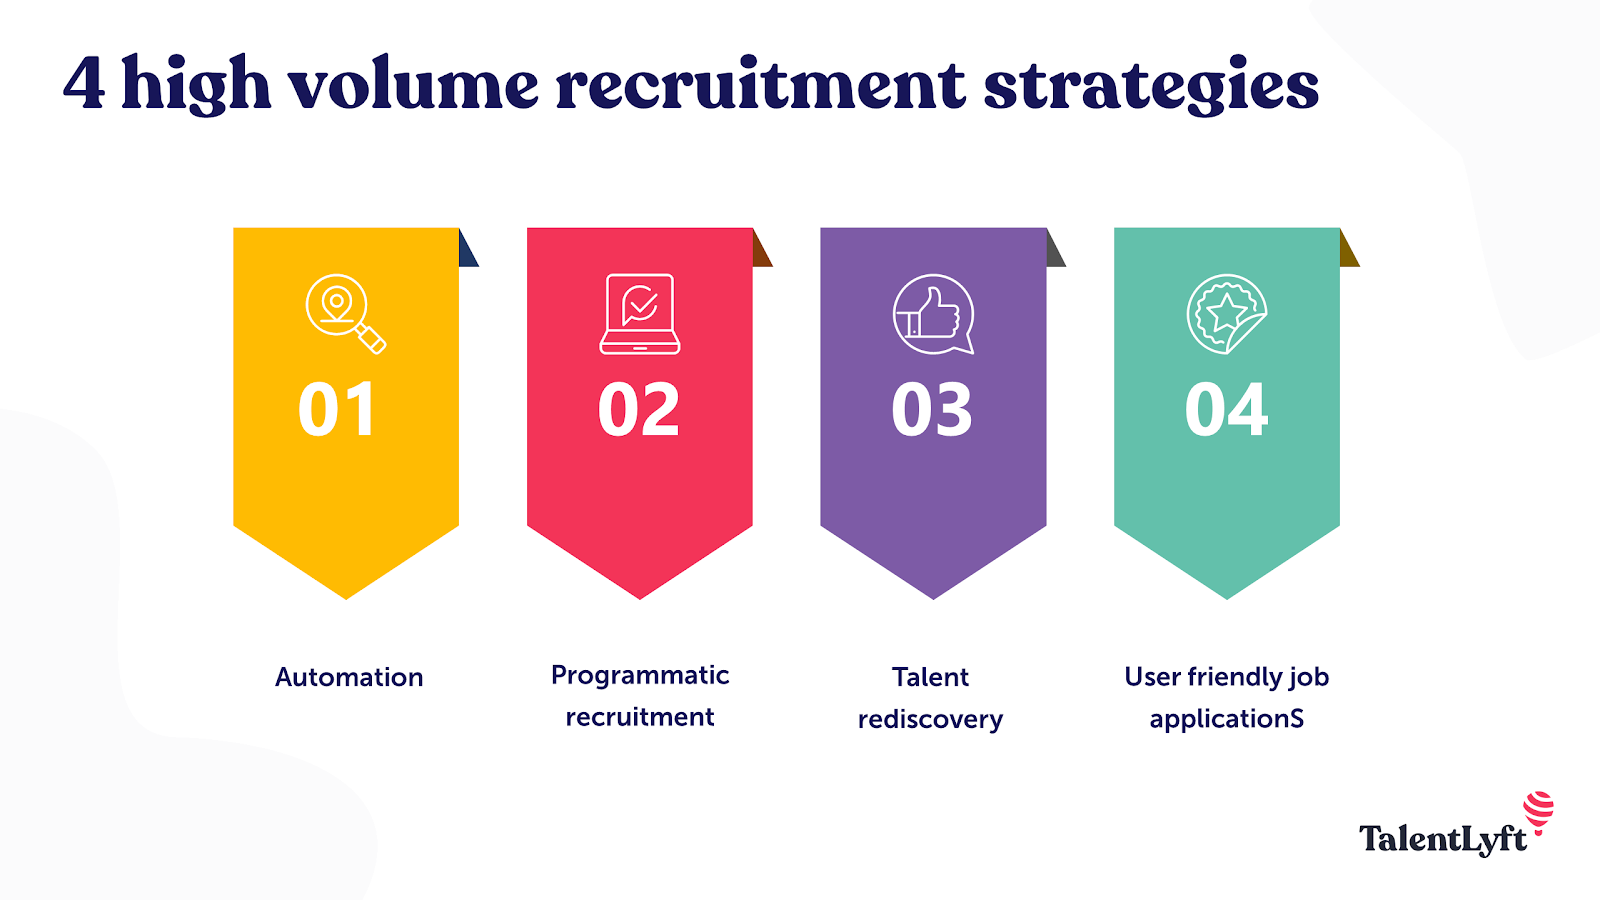 Top 4 high volume recruitment strategies